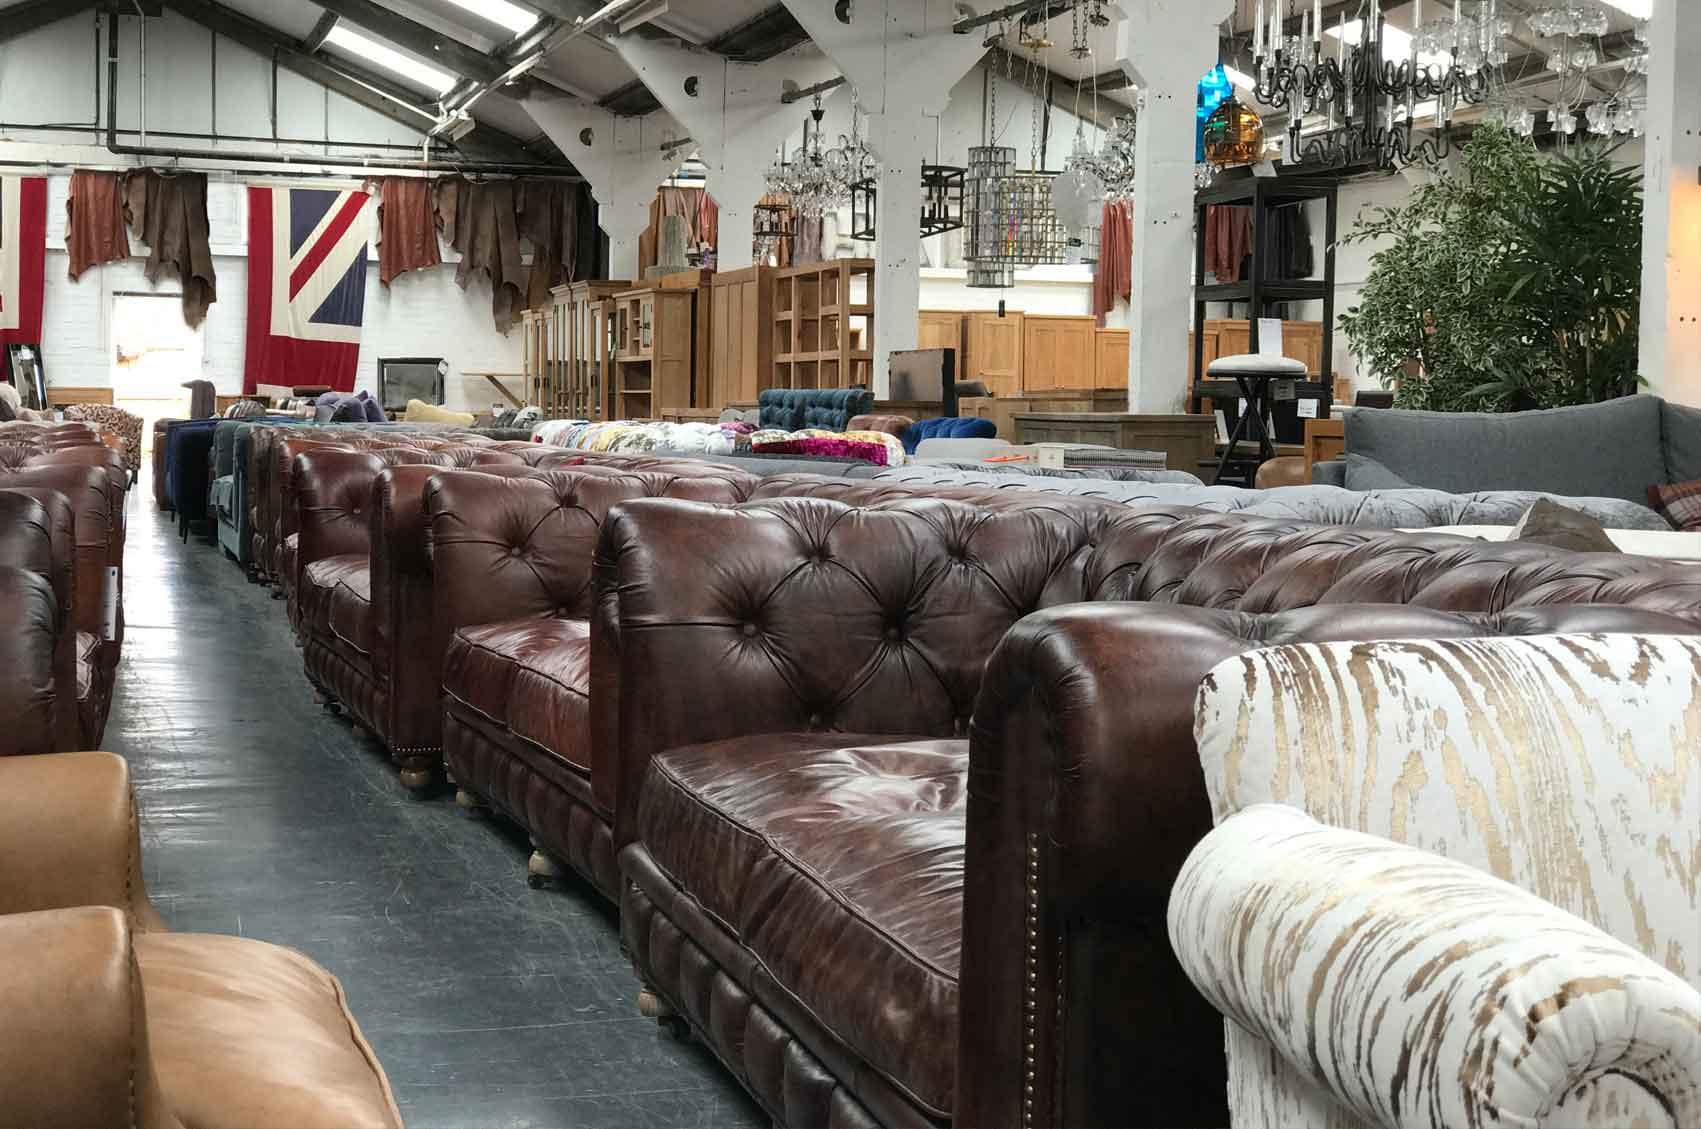 Discount designer sofas italian leather sofas designer sofa outlet furniture for your home cheshire designer sofas available in cheshire parisarafo Images